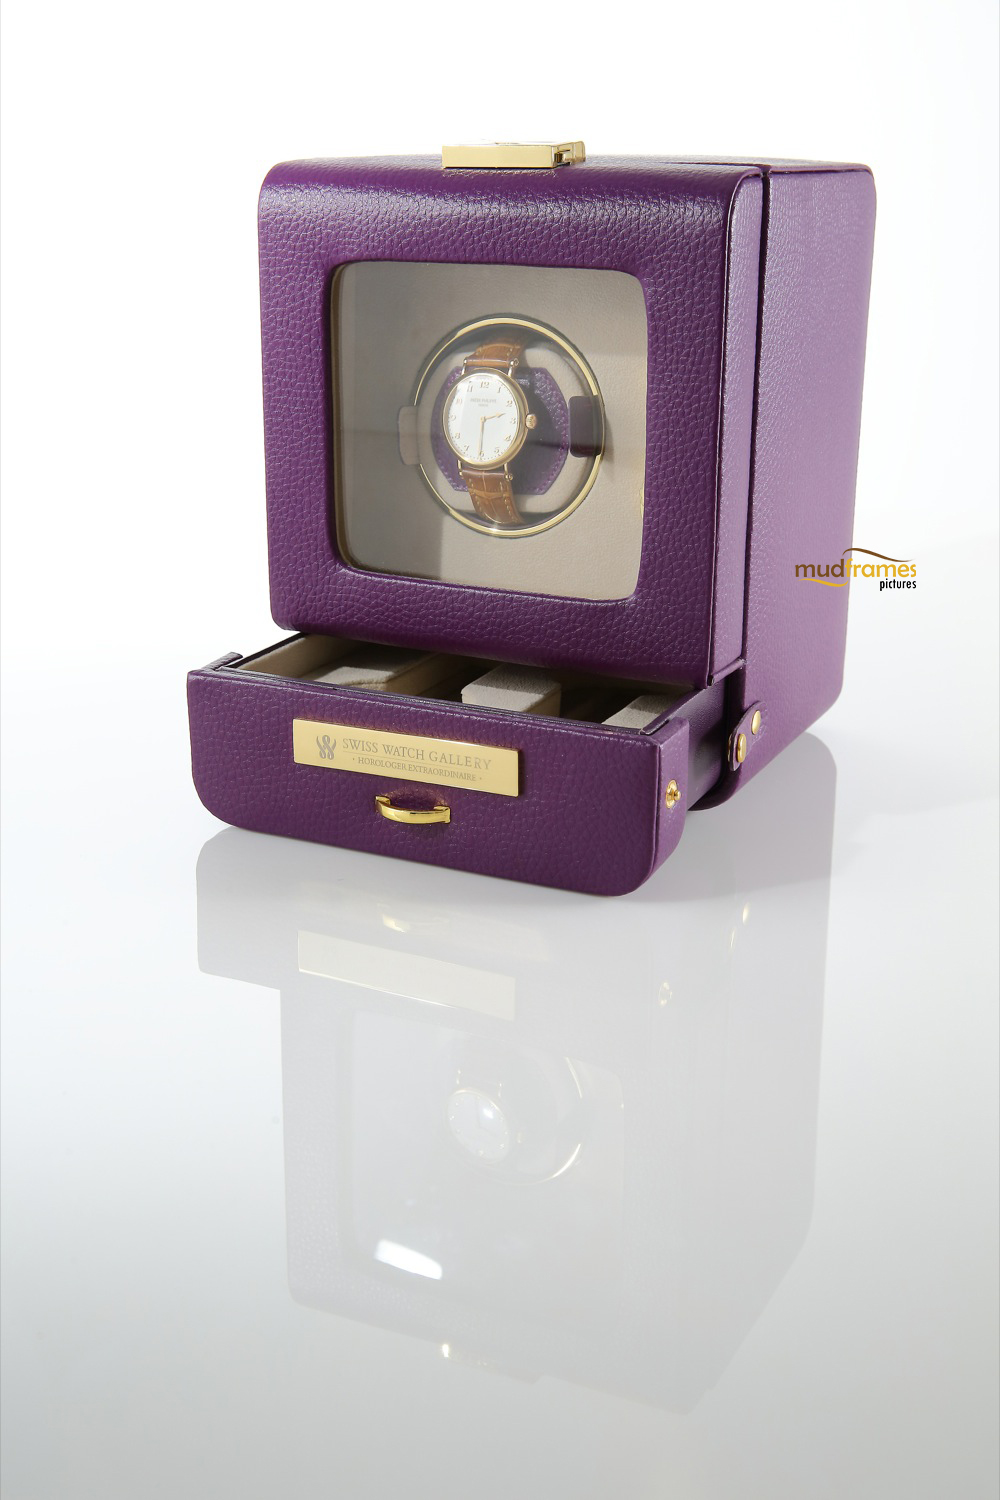 Swiss watch winder on white background